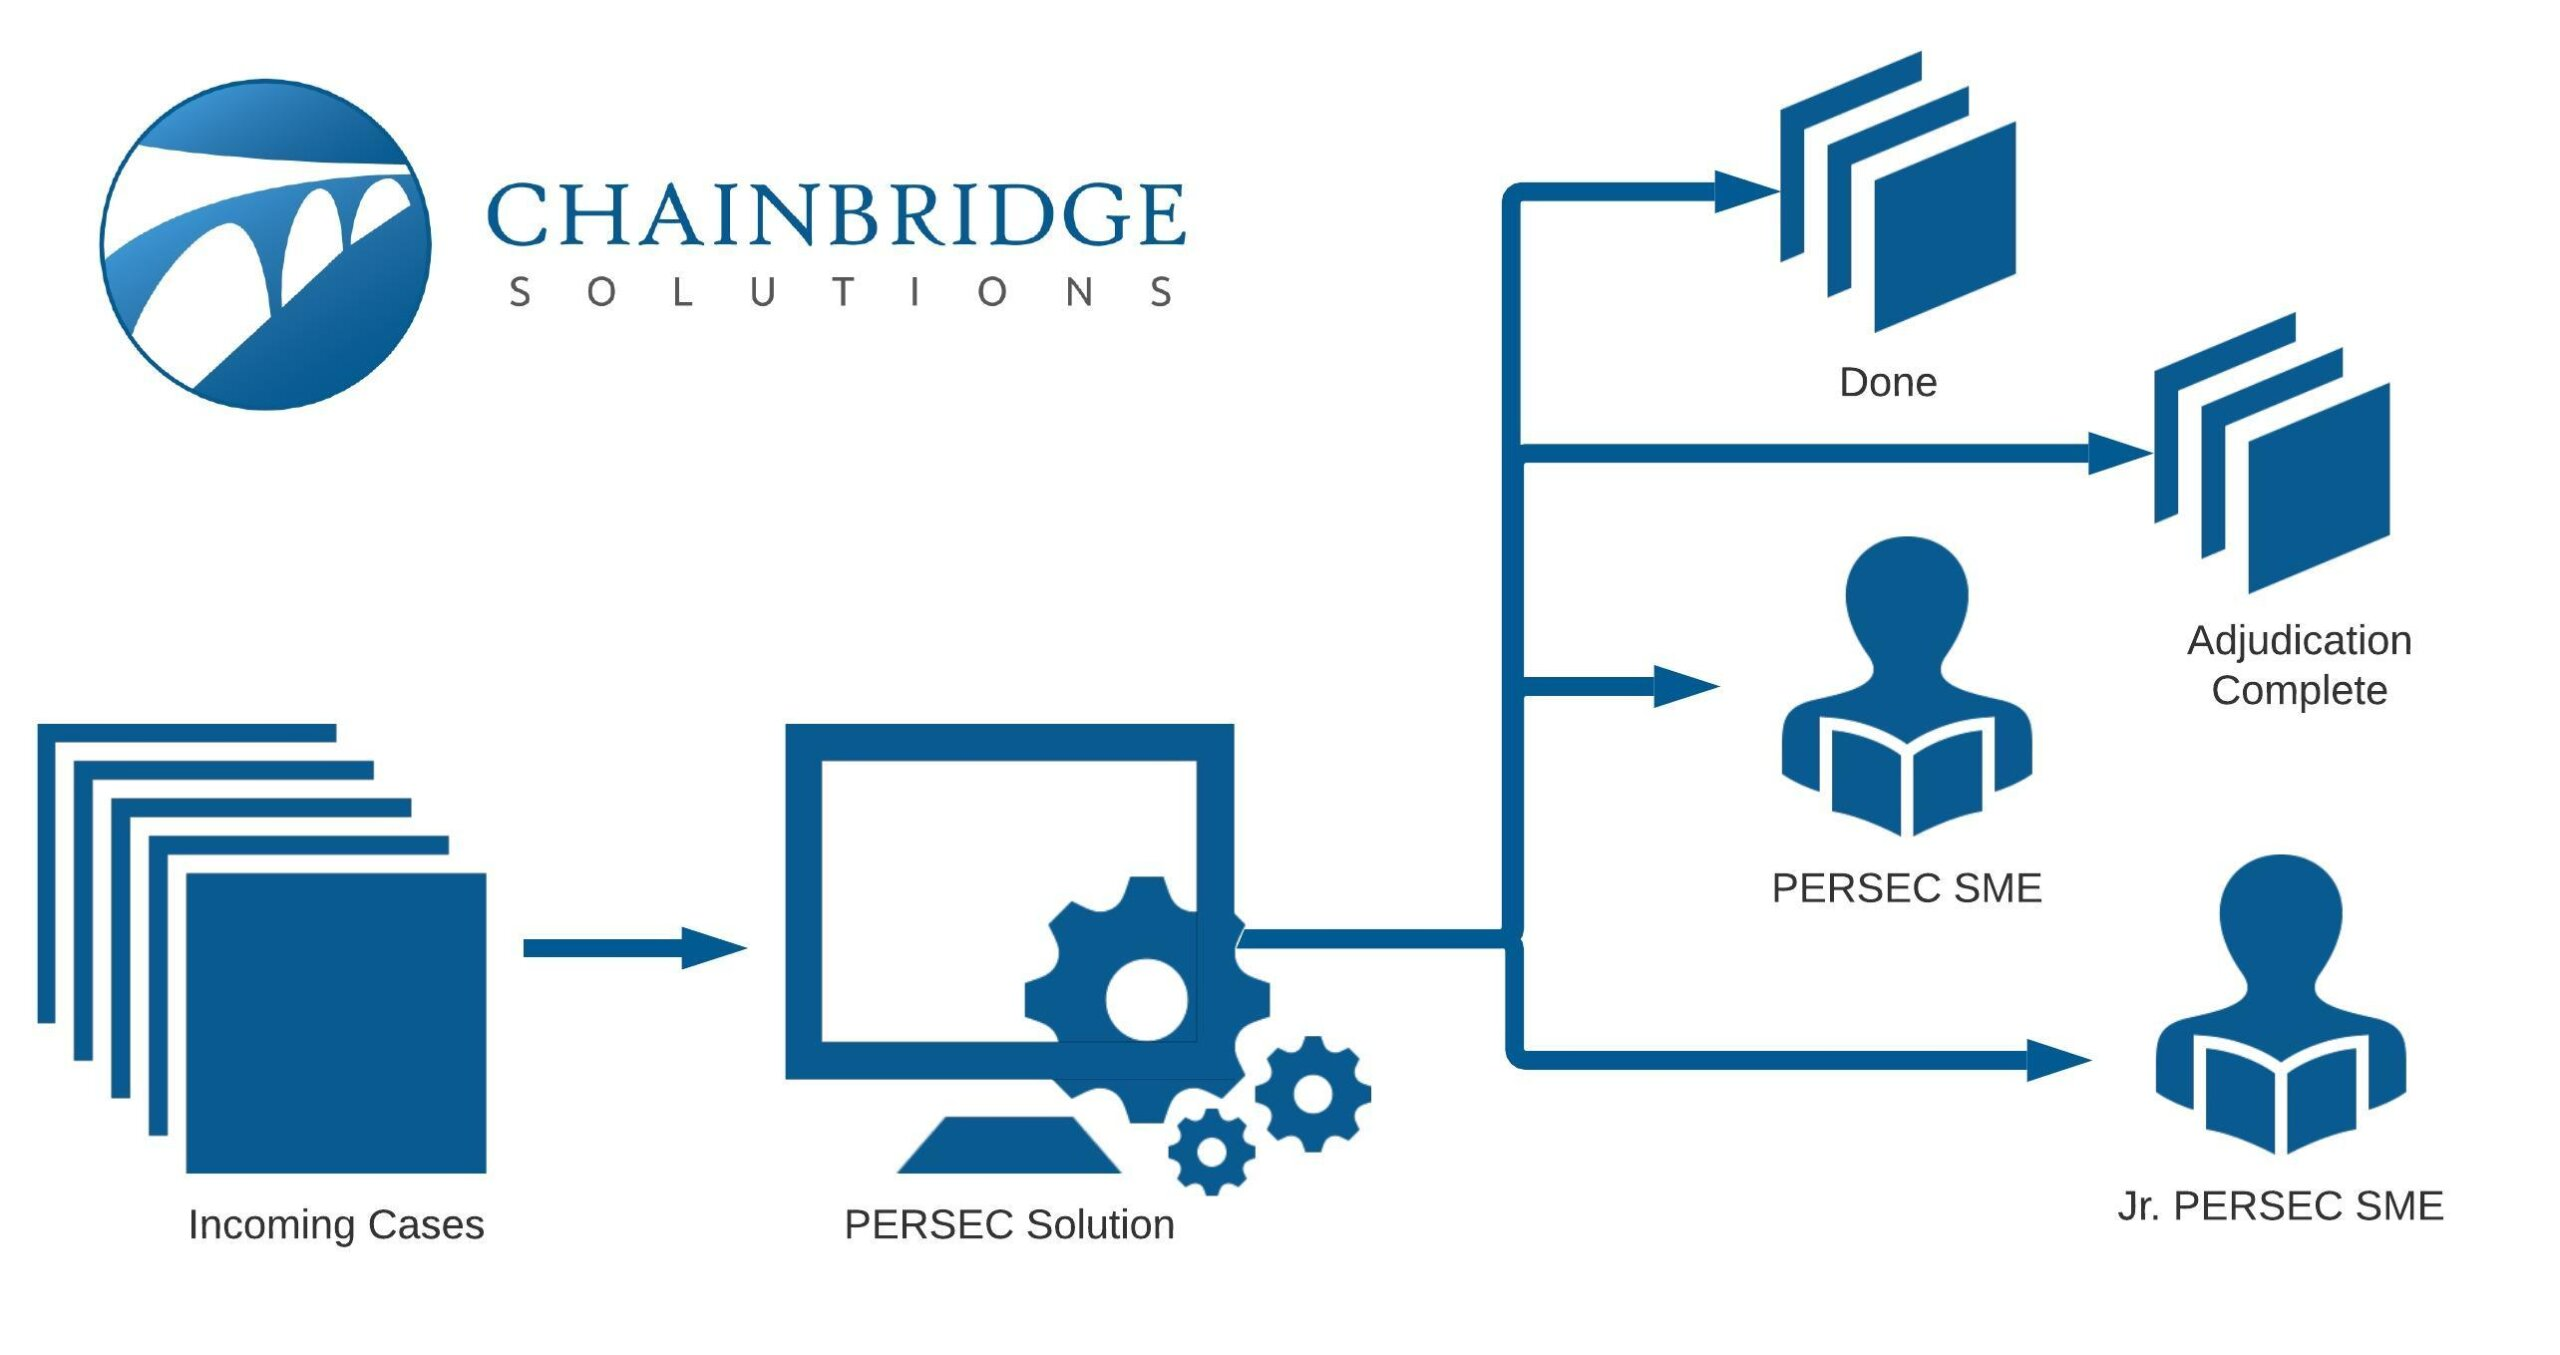 Chainbridge Solutions is Empowering the Personnel Security Community